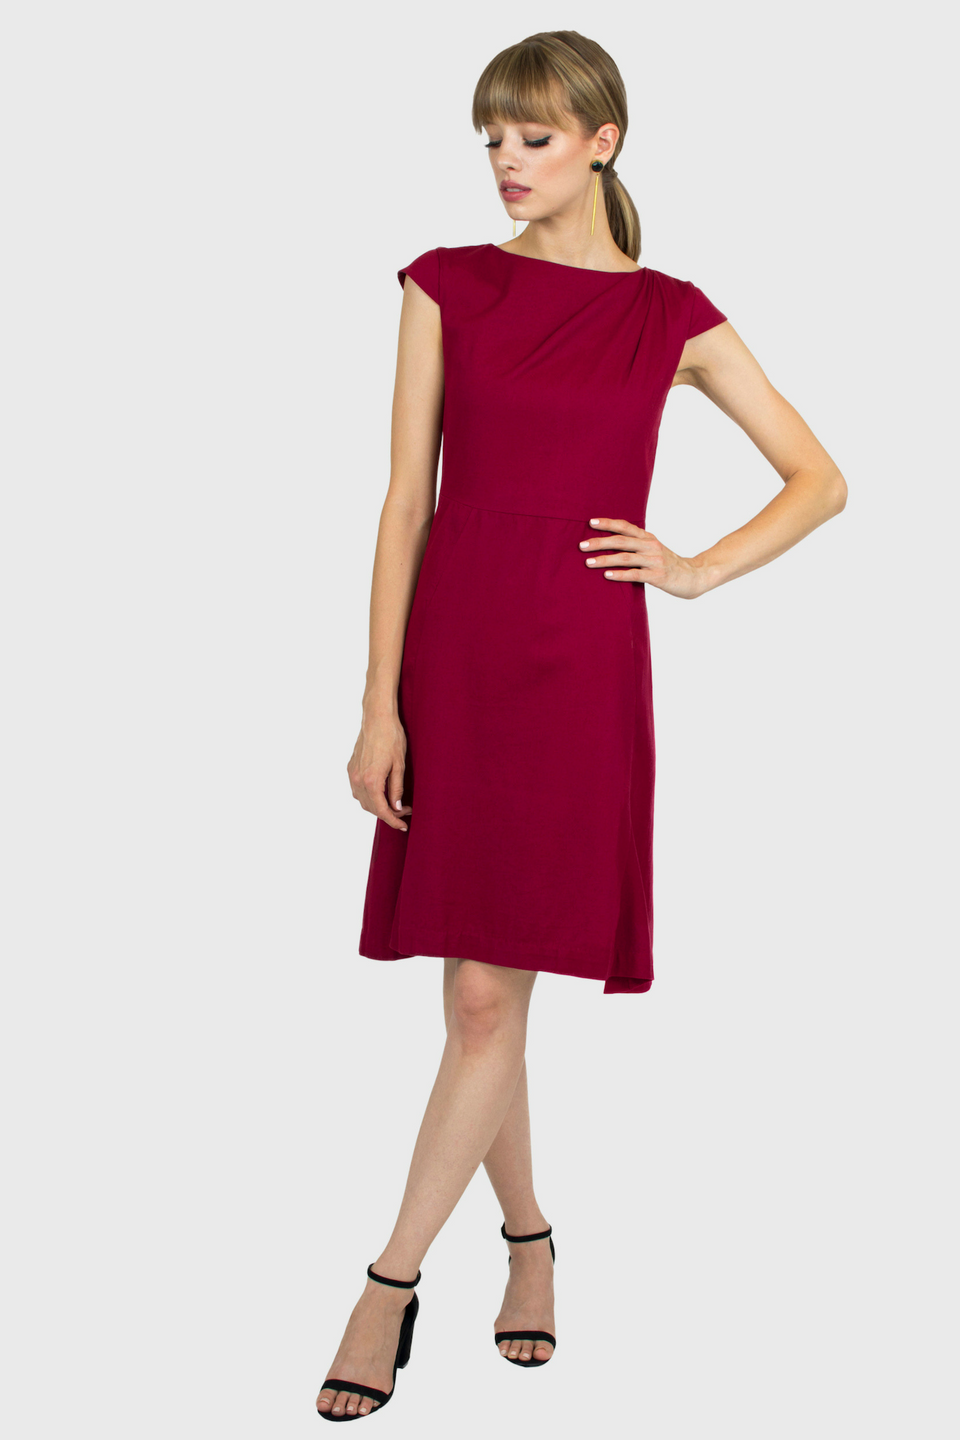 The Sarah Dress in Currant